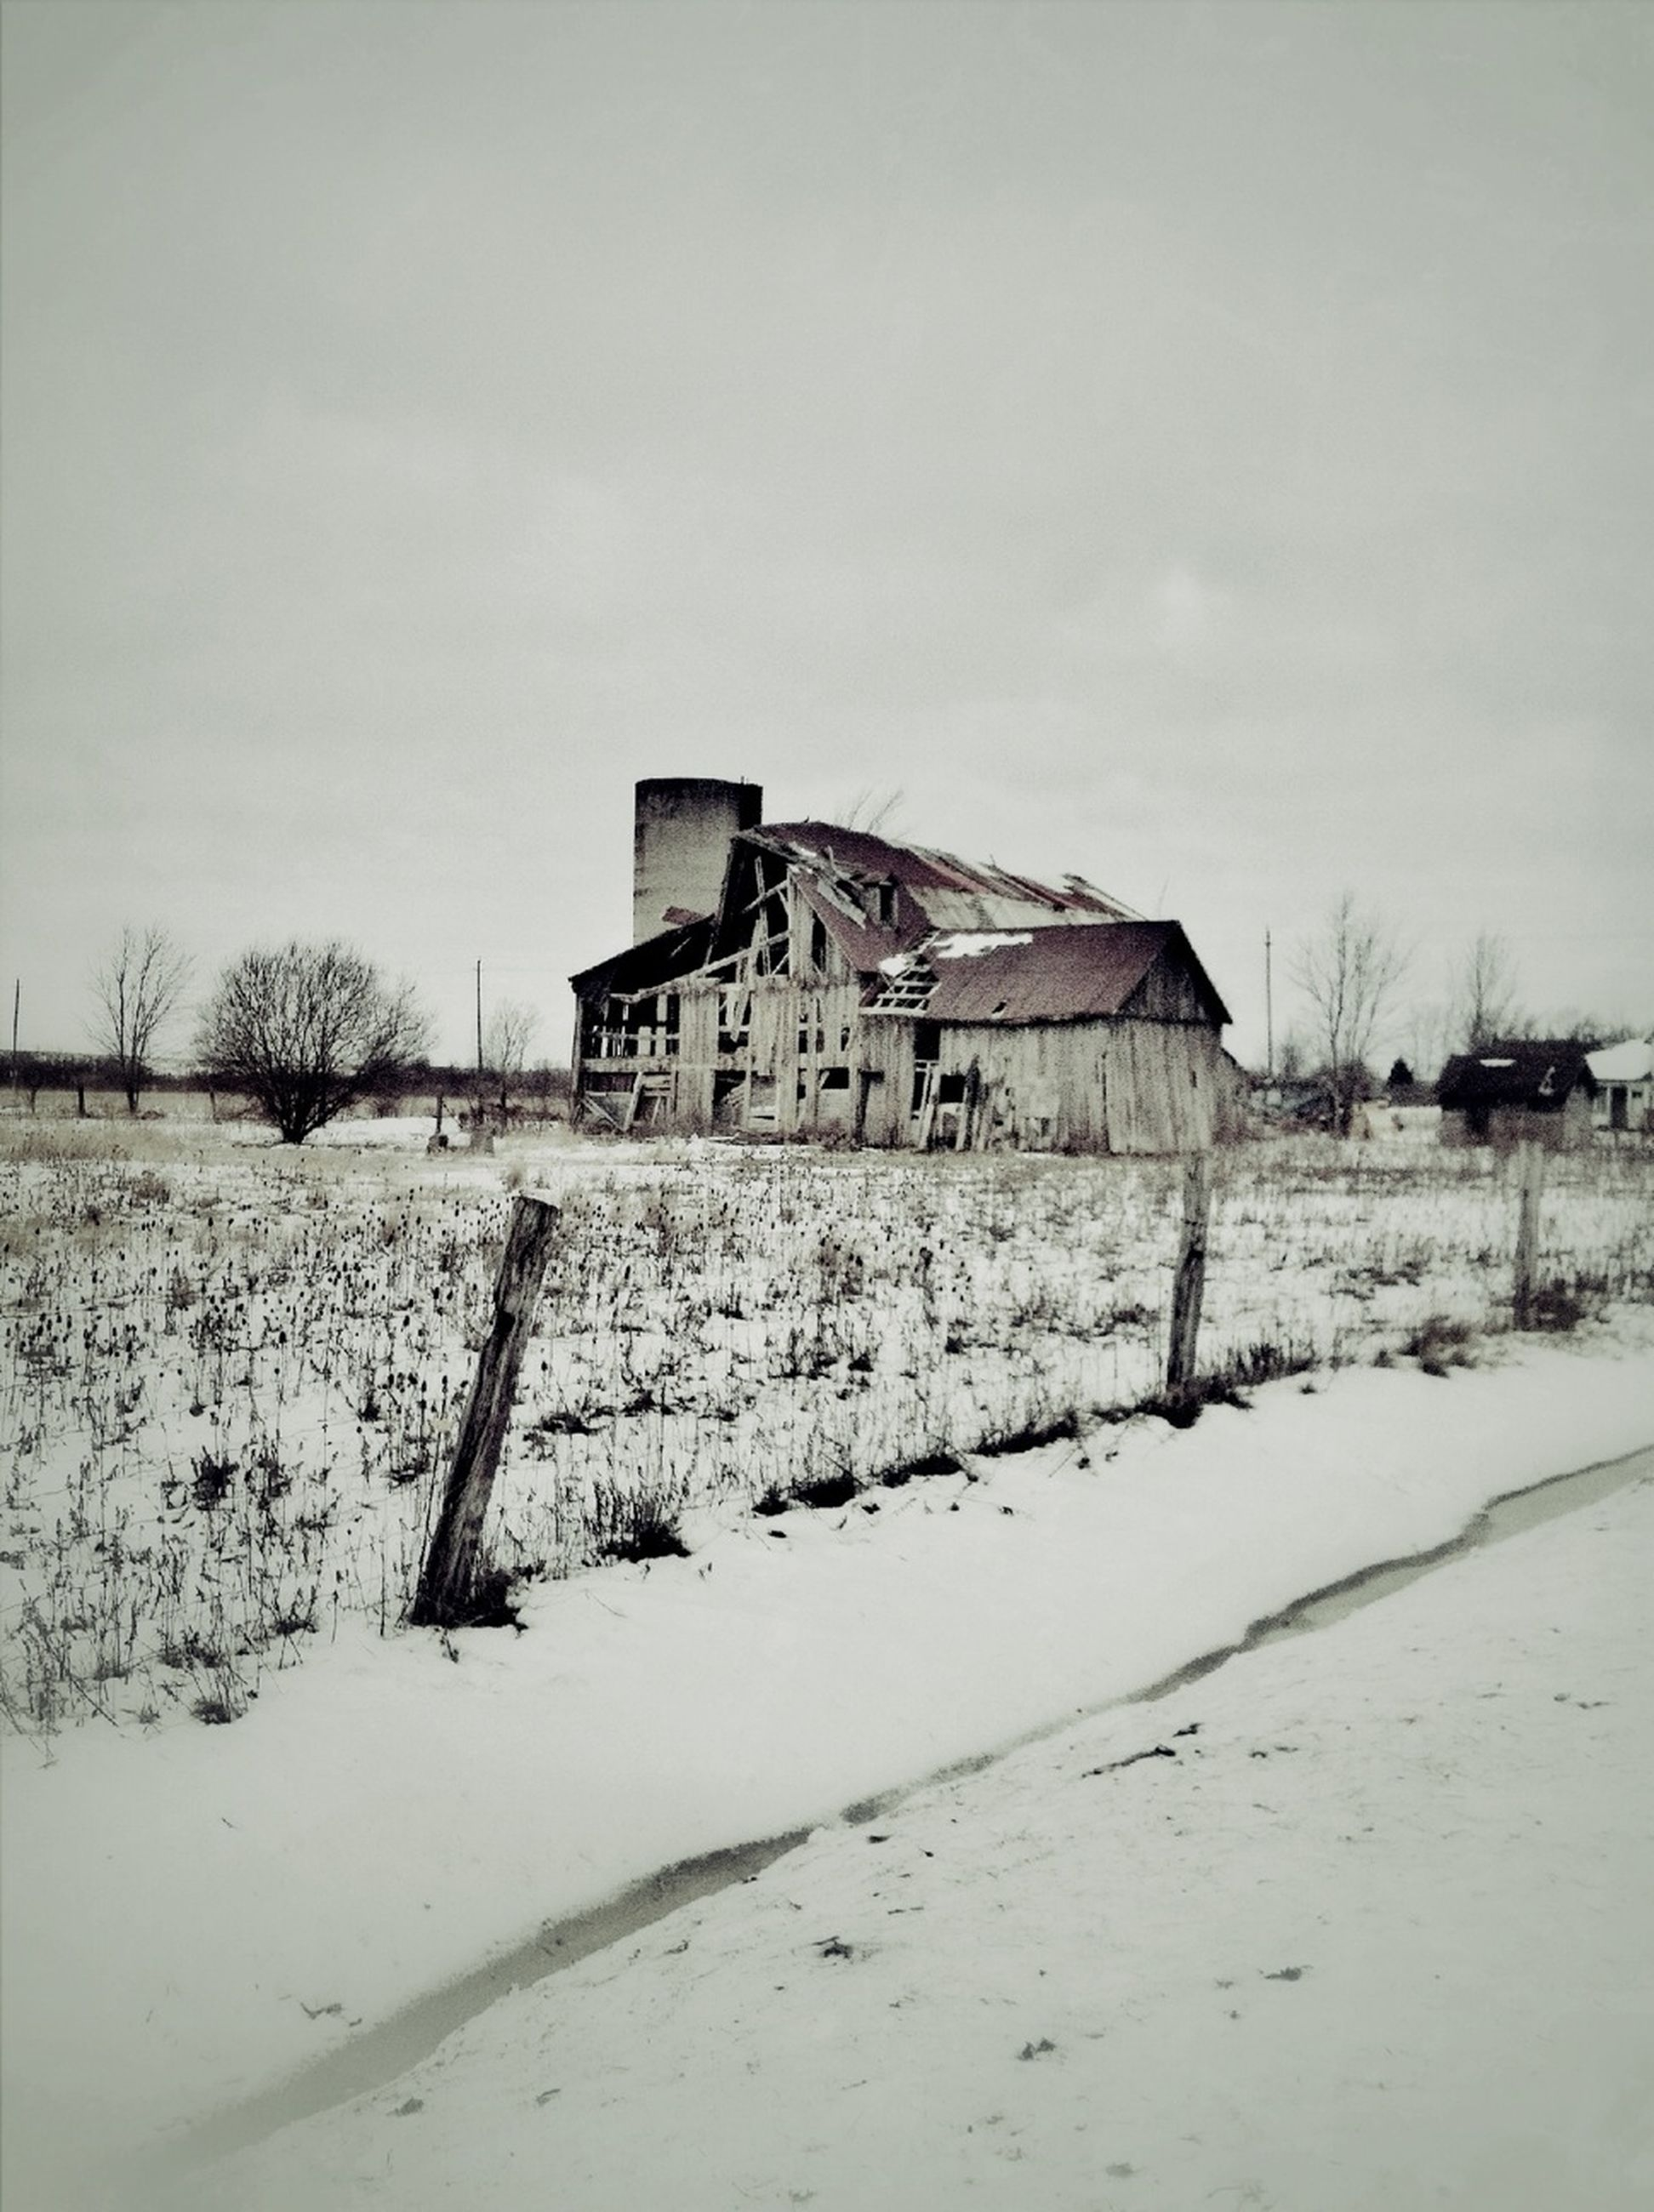 snow, winter, cold temperature, built structure, architecture, building exterior, weather, abandoned, season, sky, covering, field, house, landscape, damaged, white color, frozen, old, nature, run-down